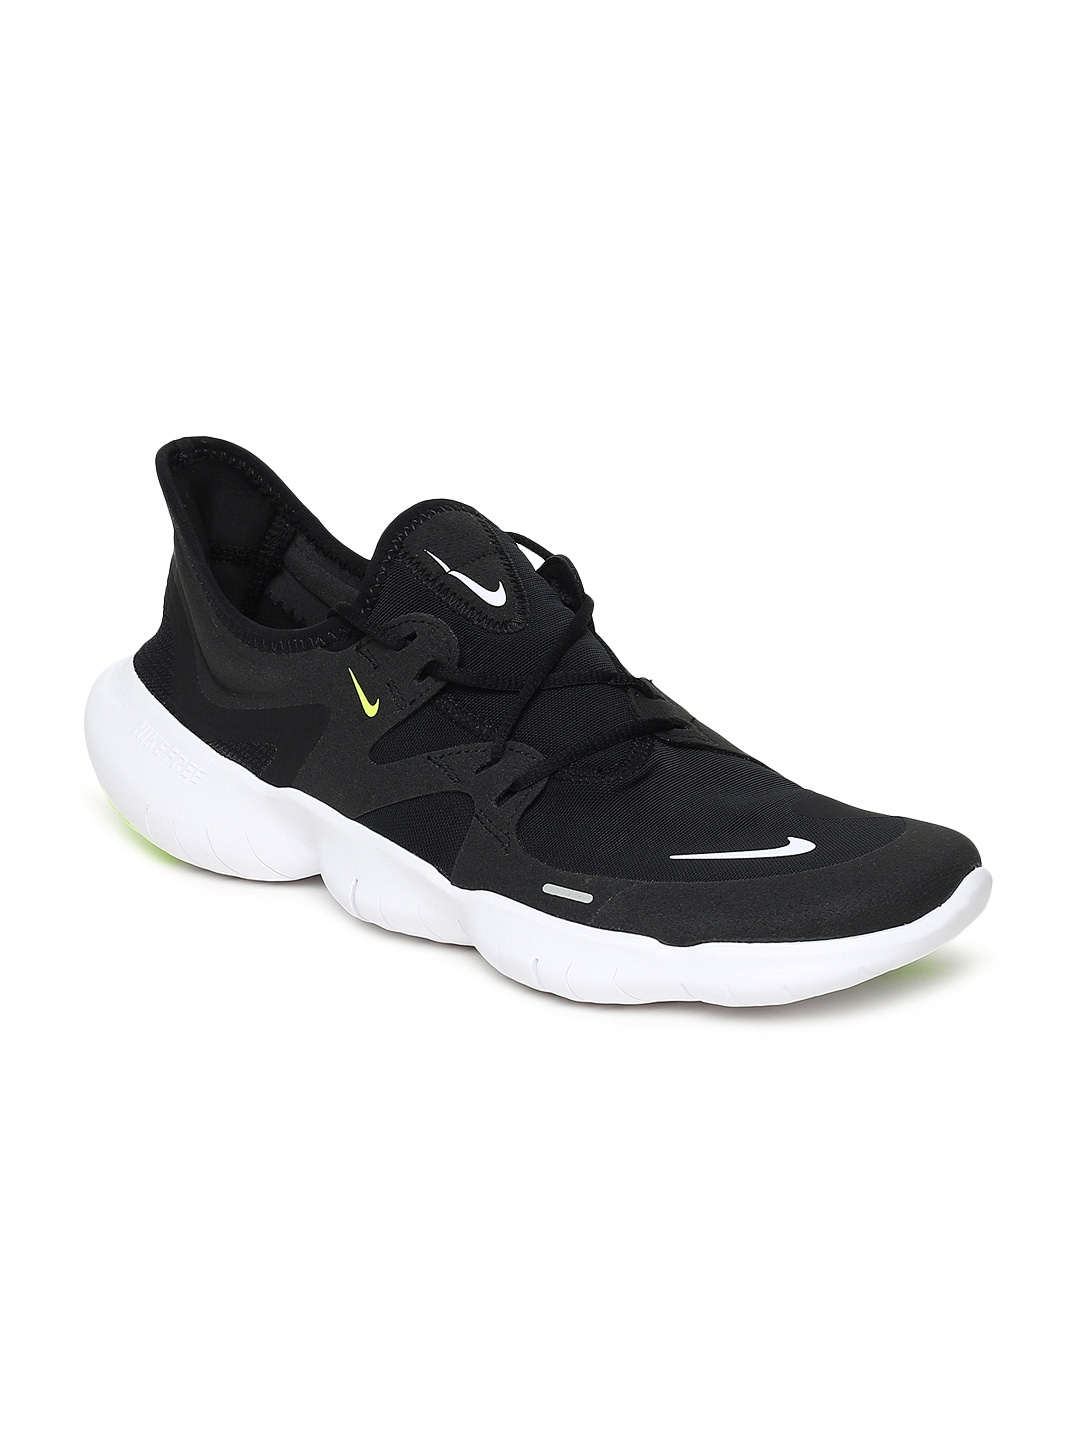 5a8c889f44b0b Nike Running Shoes - Buy Nike Running Shoes Online